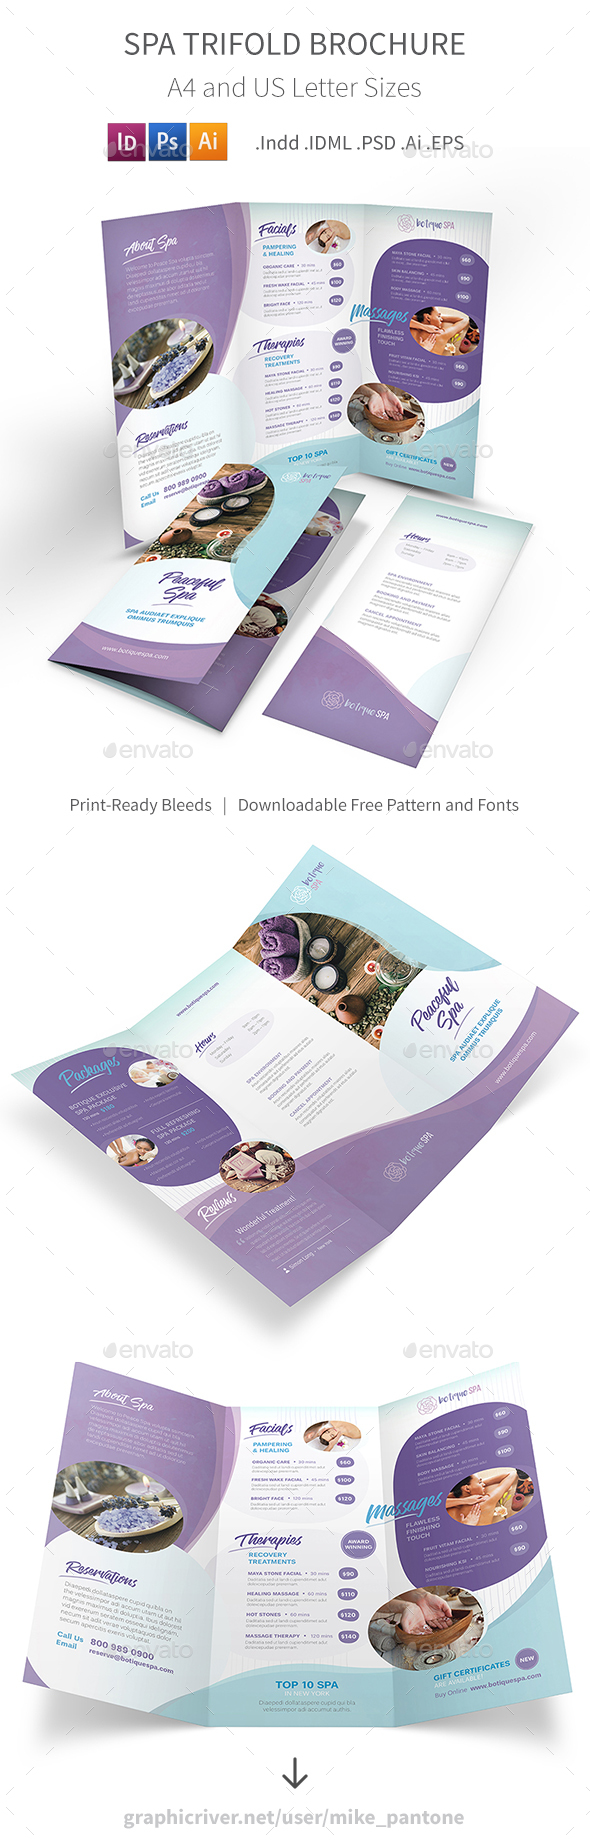 Spa Trifold Brochure 8 - Informational Brochures